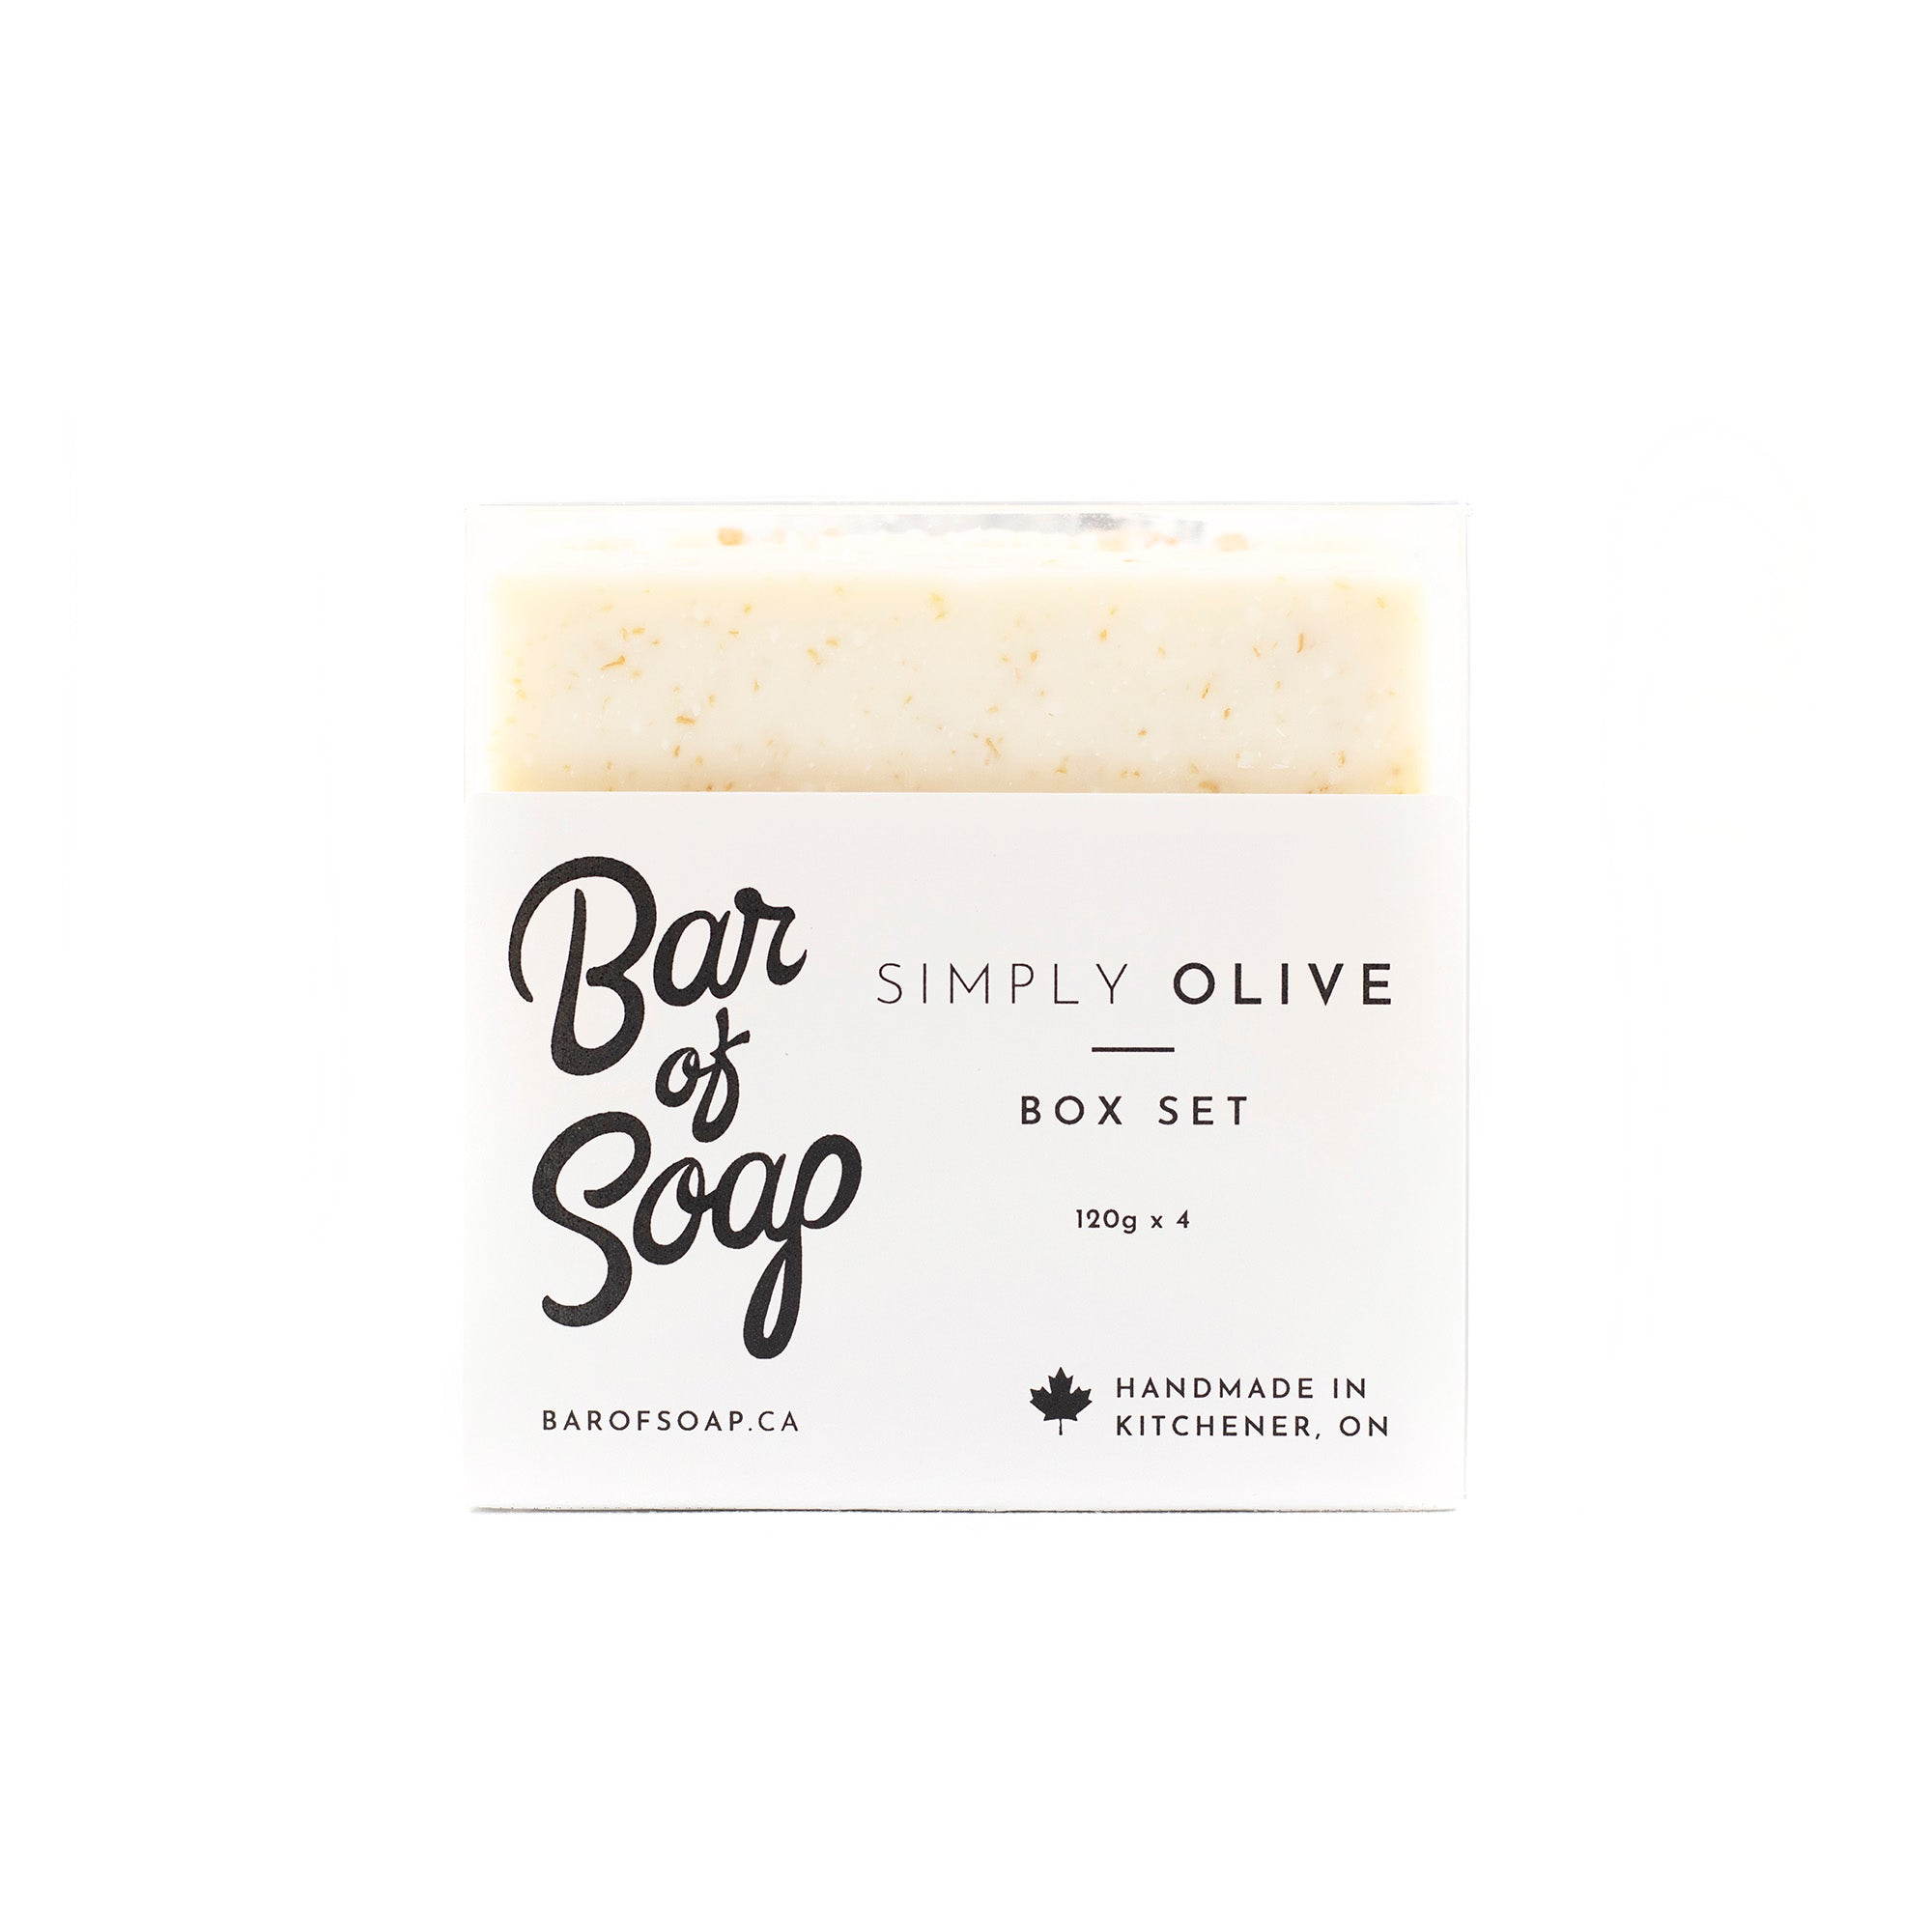 Simply Olive Box Set